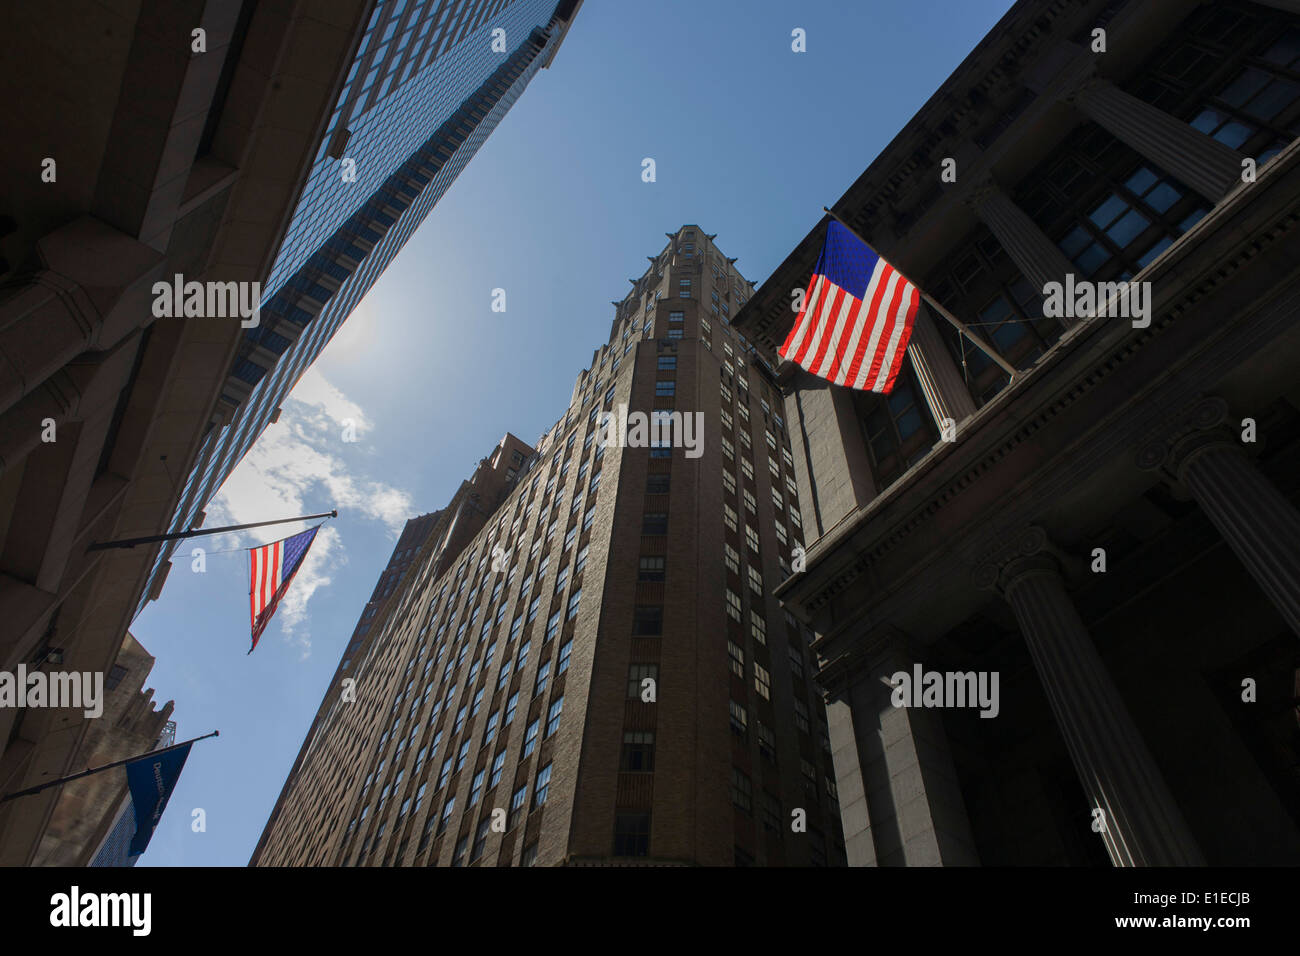 Distorted fish-eye lens view of banking and financial institutions on Wall Street, Lower Manhattan, New York City. - Stock Image